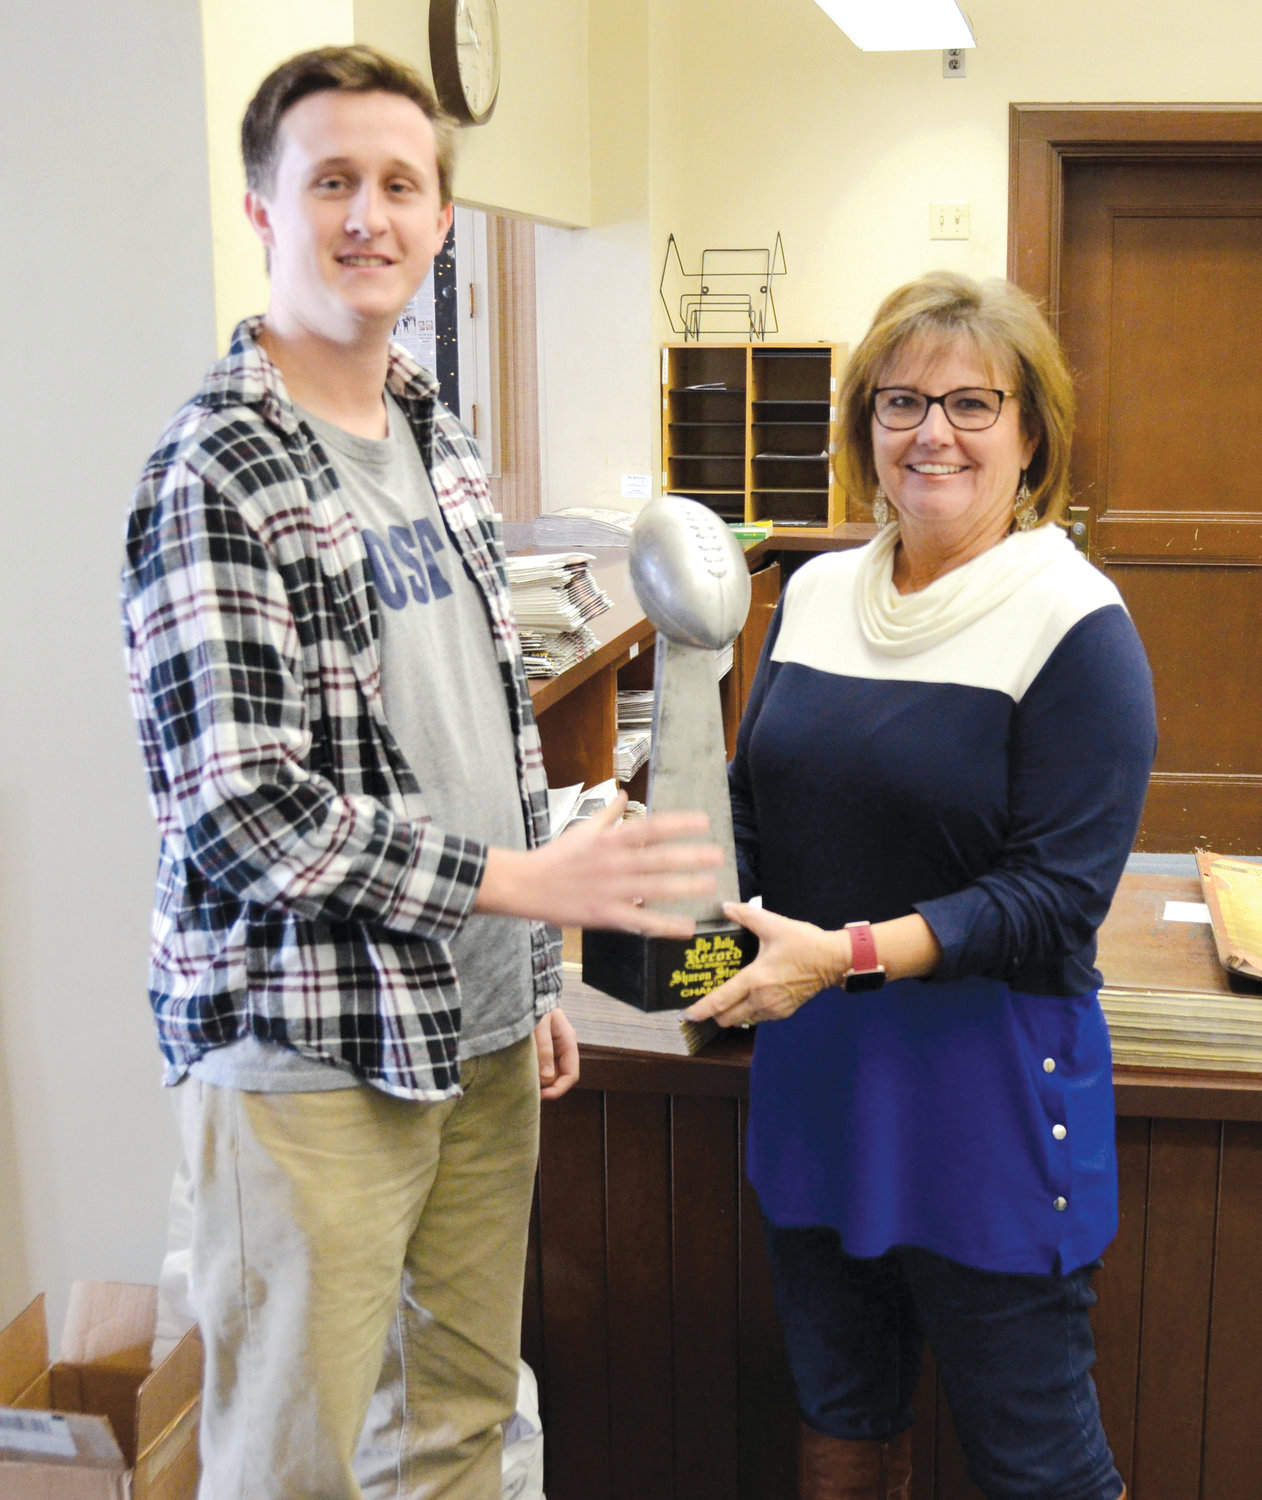 Sharon Stevens receives the Gridiron Jury trophy from Jacob Hancock, sports reporter at The Daily Record. The trophy was donated by Frazee's Trophies.